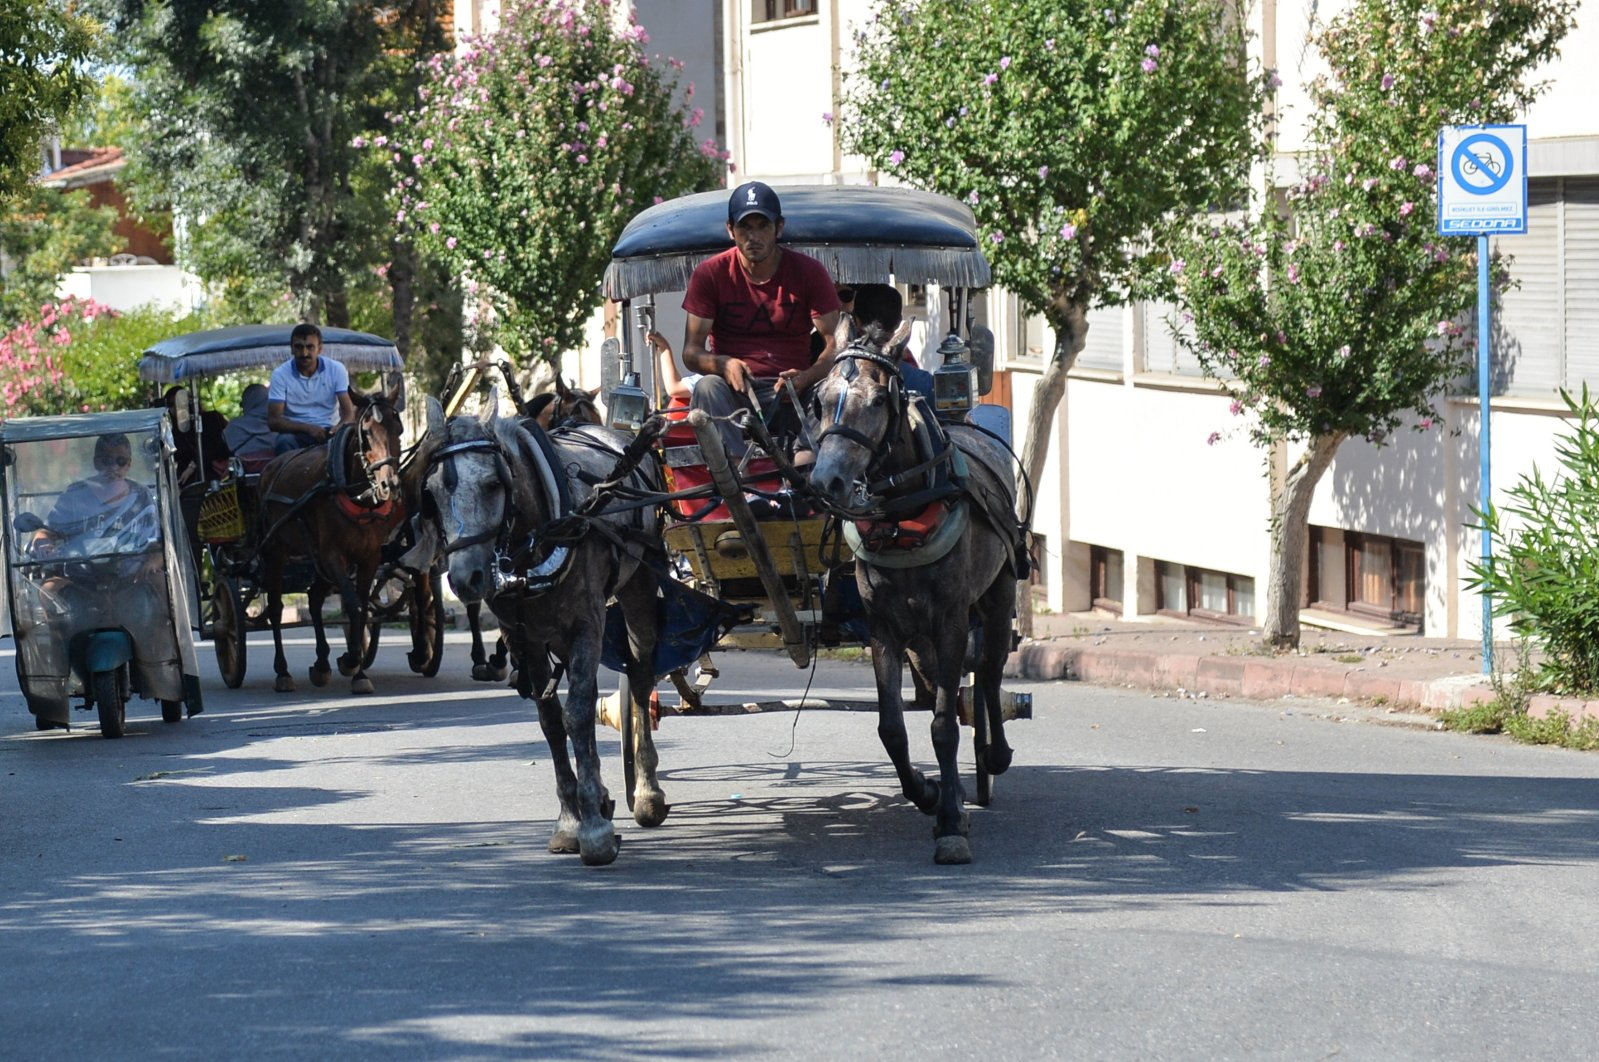 A horse-drawn carriage operates in Büyükada before the ban, in Istanbul, Turkey, Aug. 15, 2019. (DHA PHOTO)